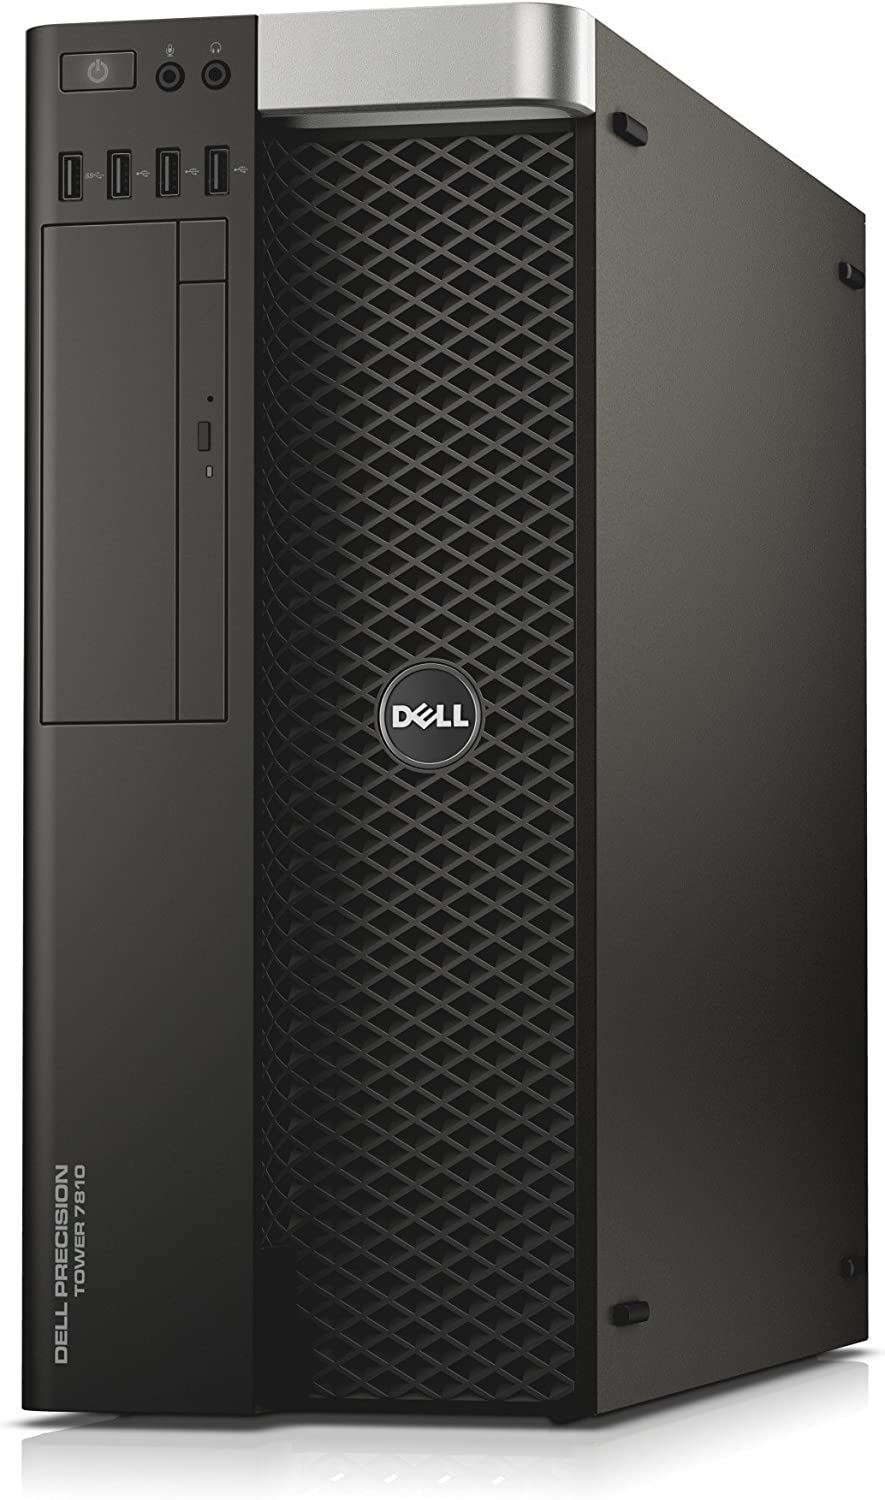 Dell Precision Limited Special Price T7810 Workstation Don't miss the campaign E5-2650 2.2GHz 64GB 12-Core V4